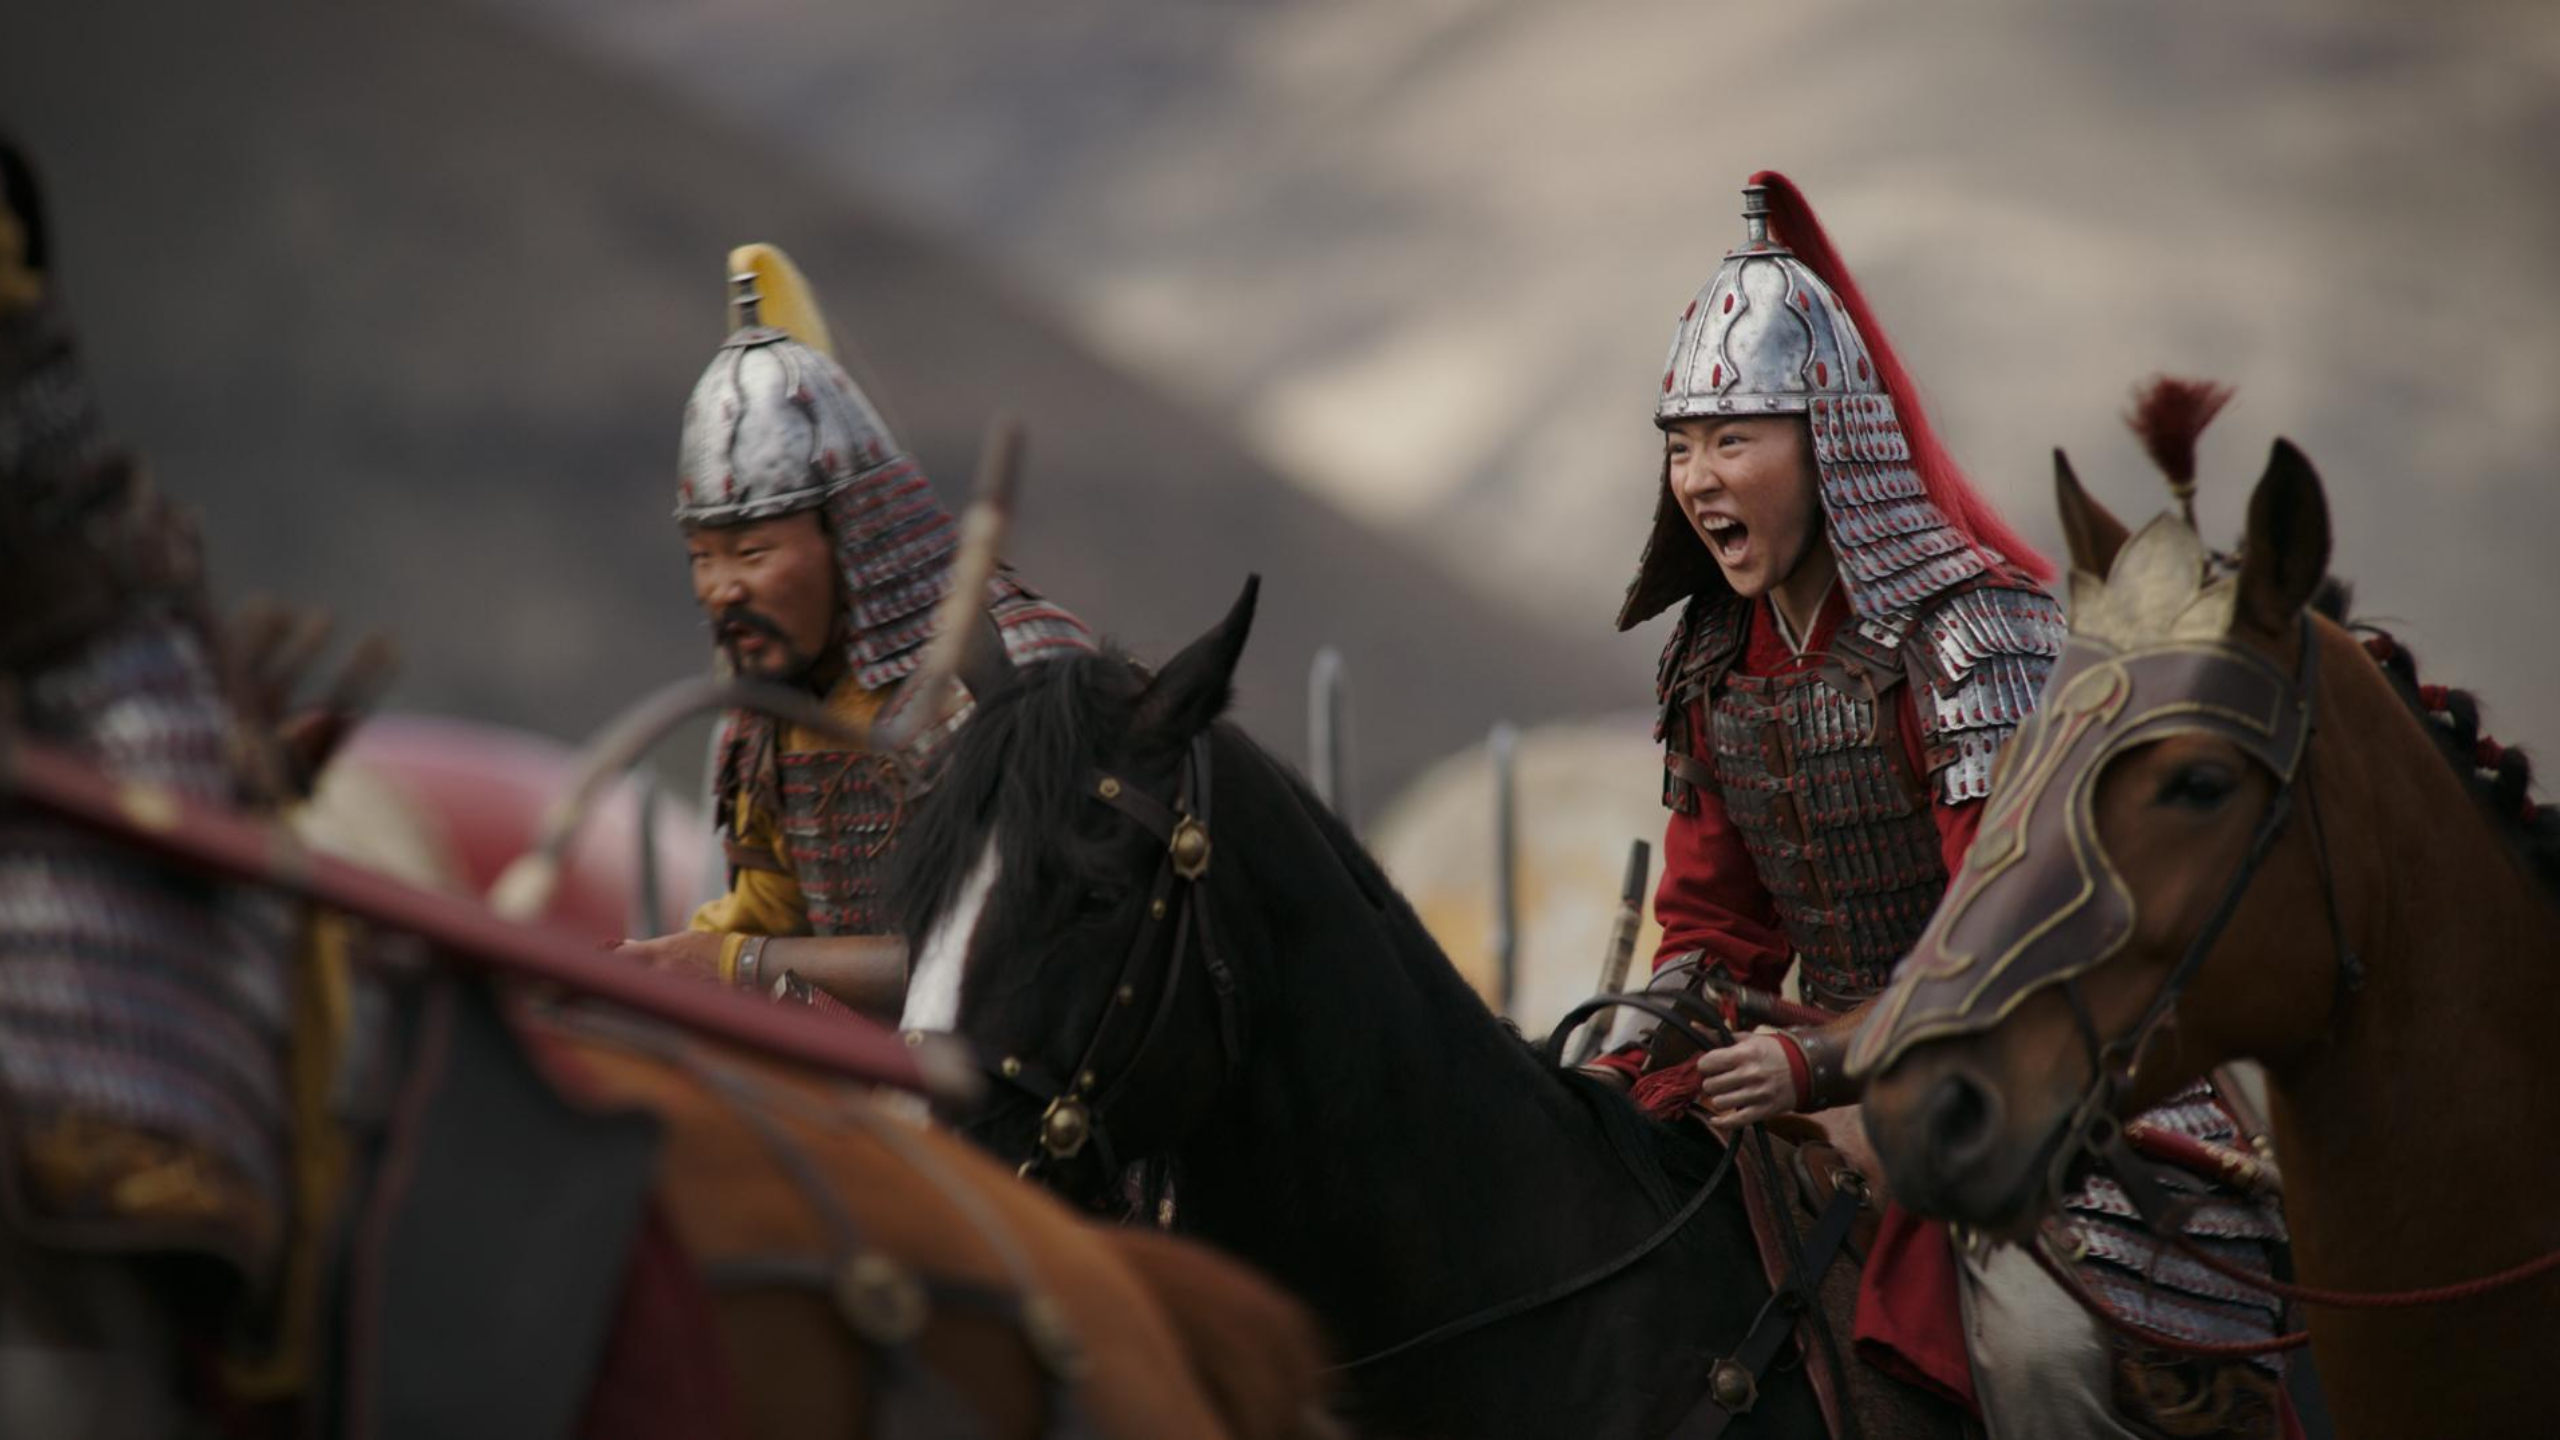 So I Know I Wasn't Happy About The Mulan Live Action Movie Before But After Watching This I'm Excited